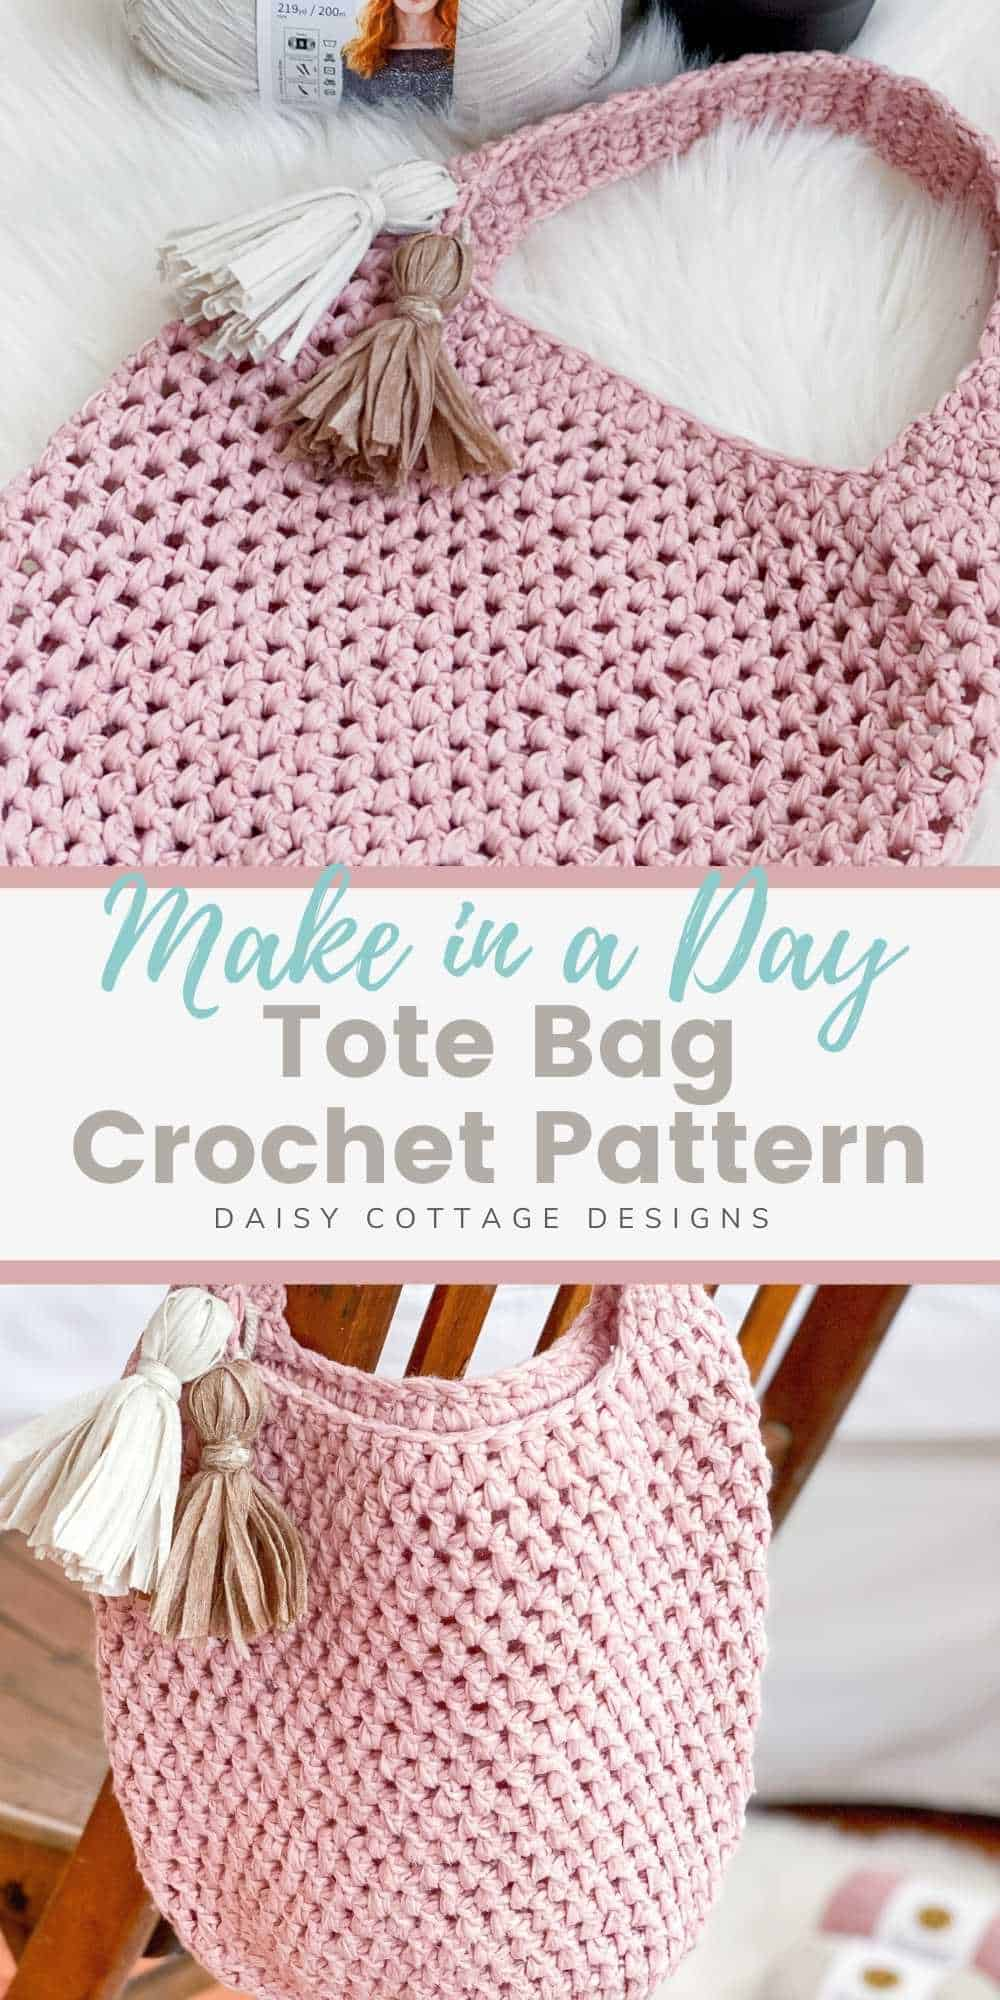 You're not going to want to miss this market tote crochet pattern. Use this free tote bag crochet pattern to create a gorgeous gift!